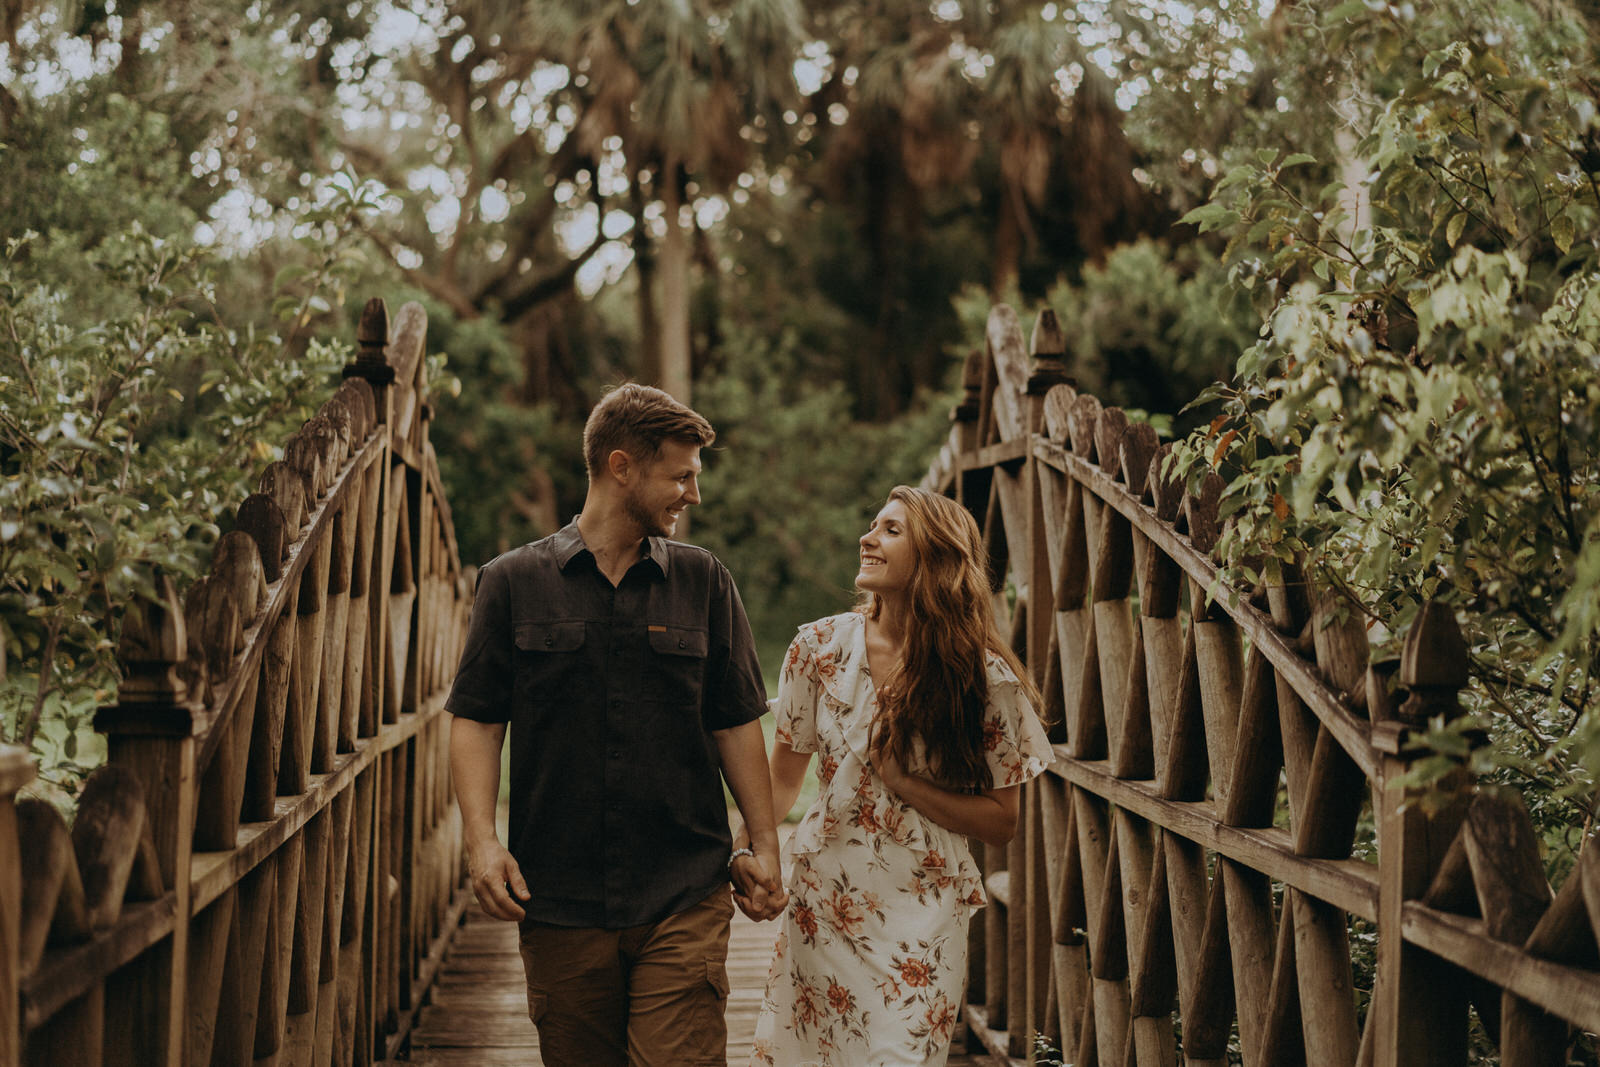 Florida Wedding Photographer-Michelle Gonzalez Photography-Koreshan State Historic Site-Rhiannon and Chris-74.jpg